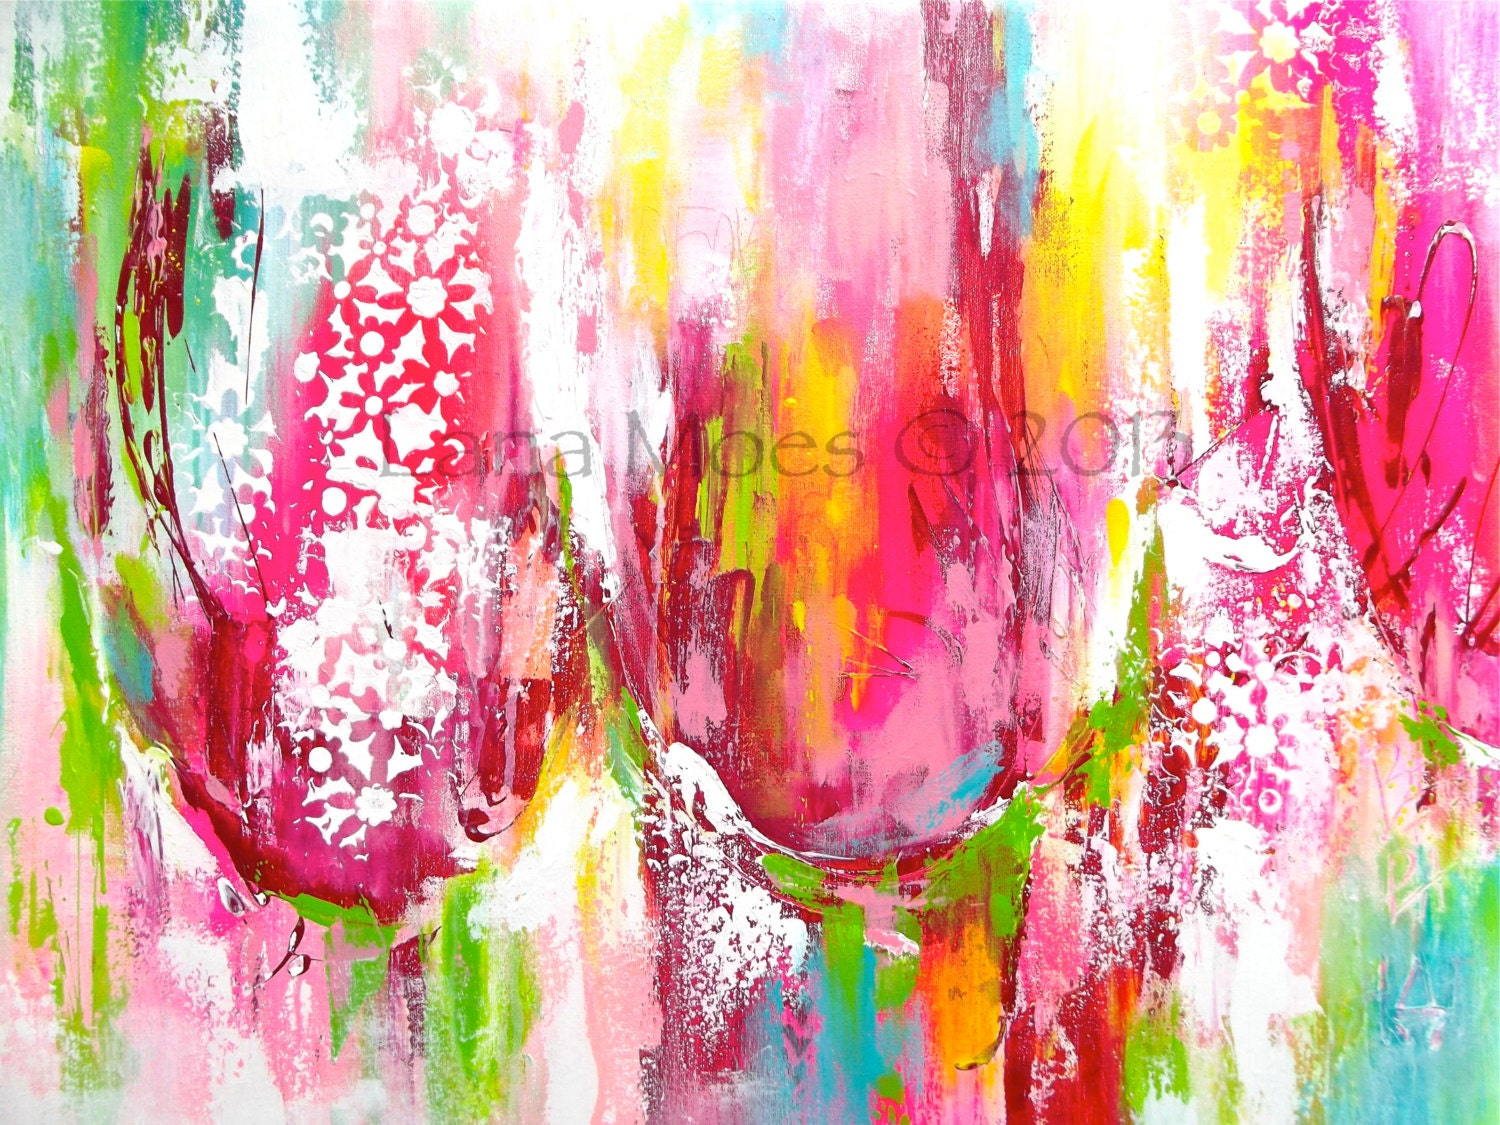 Pink Abstract Canvas Art: Large Abstract Tulips Painting Pink Red Chartreuse Teal